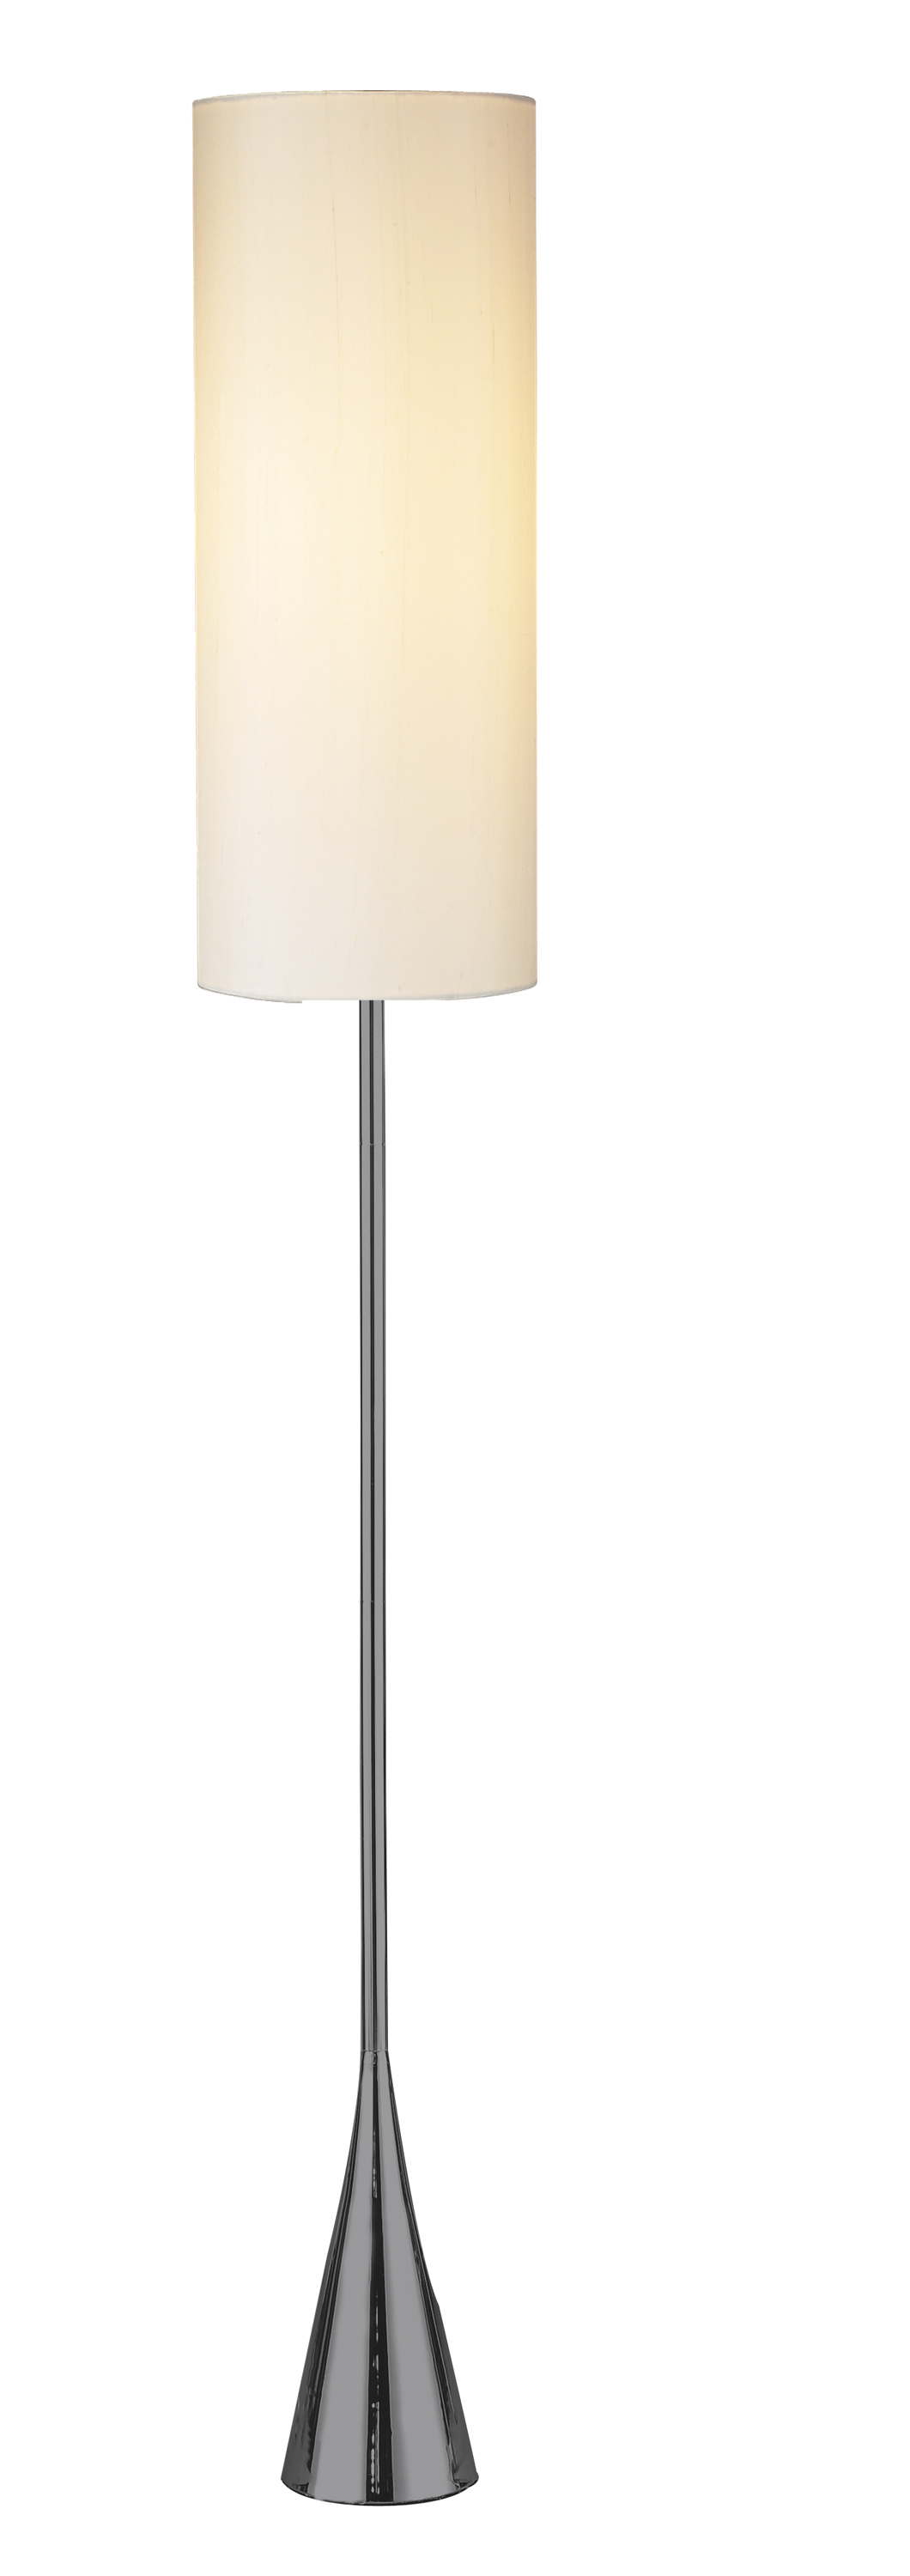 adesso-floor-lamp-photo-6